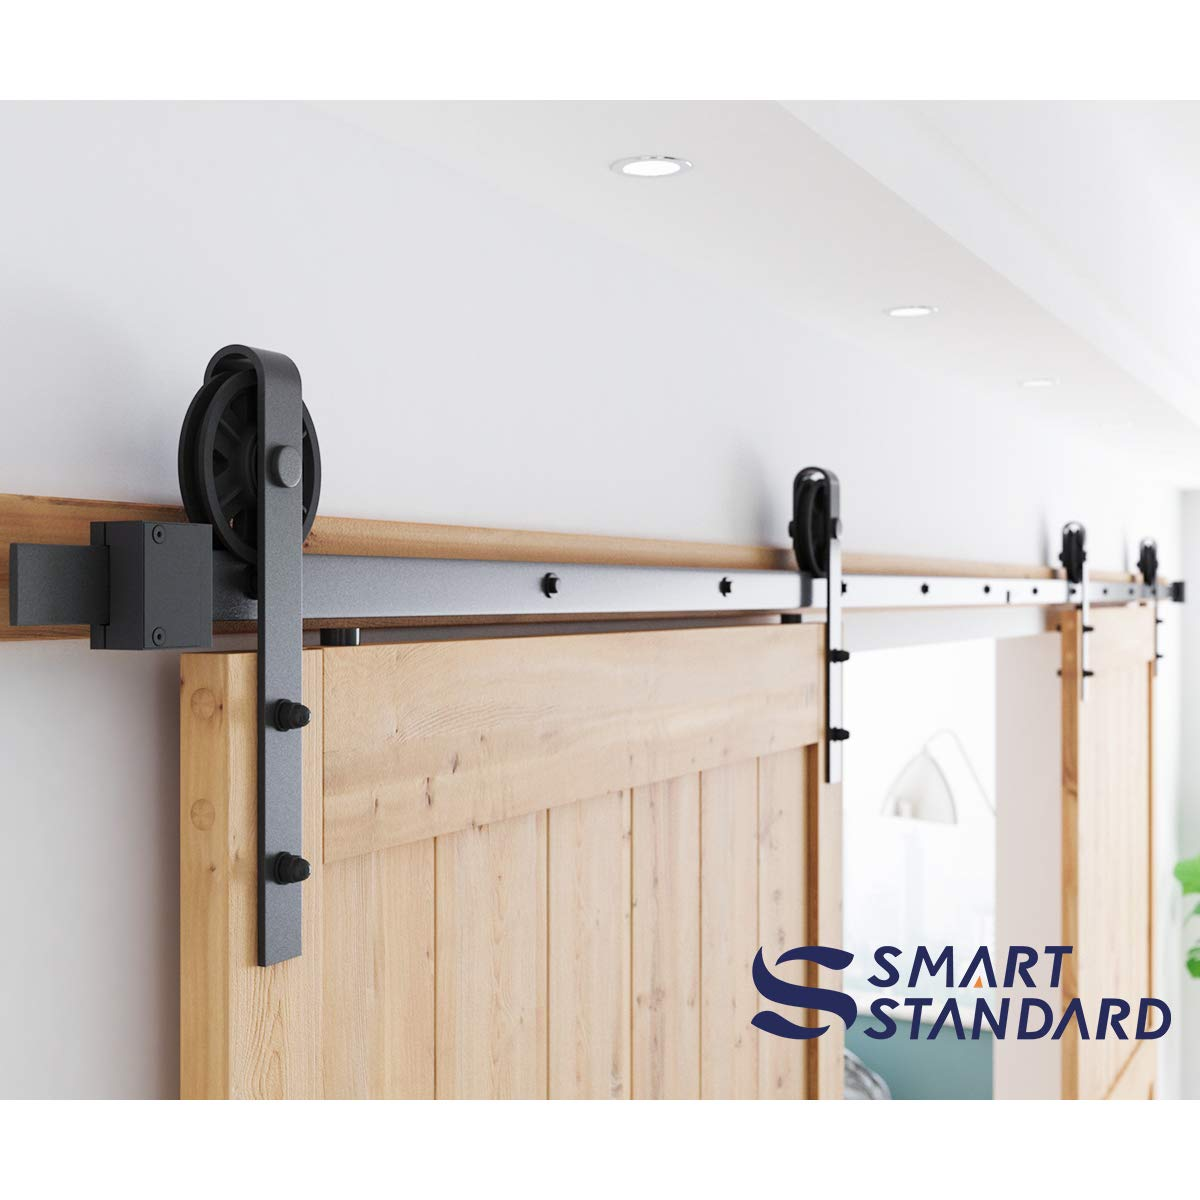 16ft Double Door Sliding Barn Door Hardware Kit - Smoothly and Quietly - Easy to Install - Includes Step-by-Step Installation Instruction -Fit 42''-48'' Wide Door Panel(Big Industrial Wheel Hanger) by SMARTSTANDARD (Image #3)